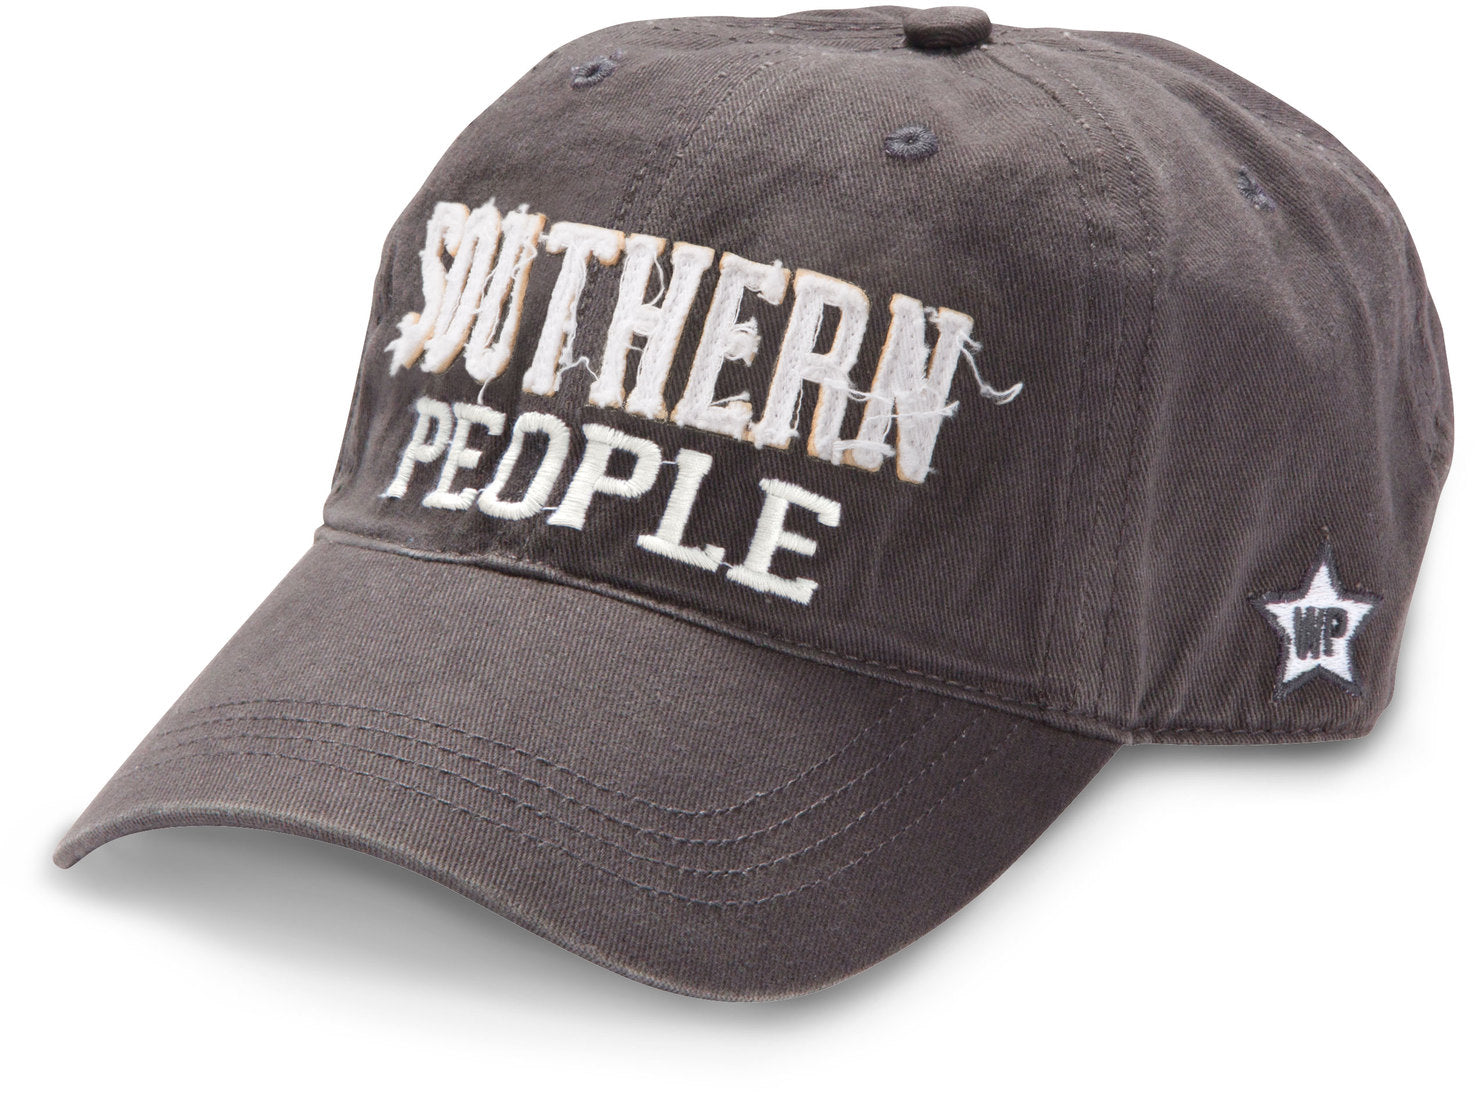 Southern People Dark Grey Cap